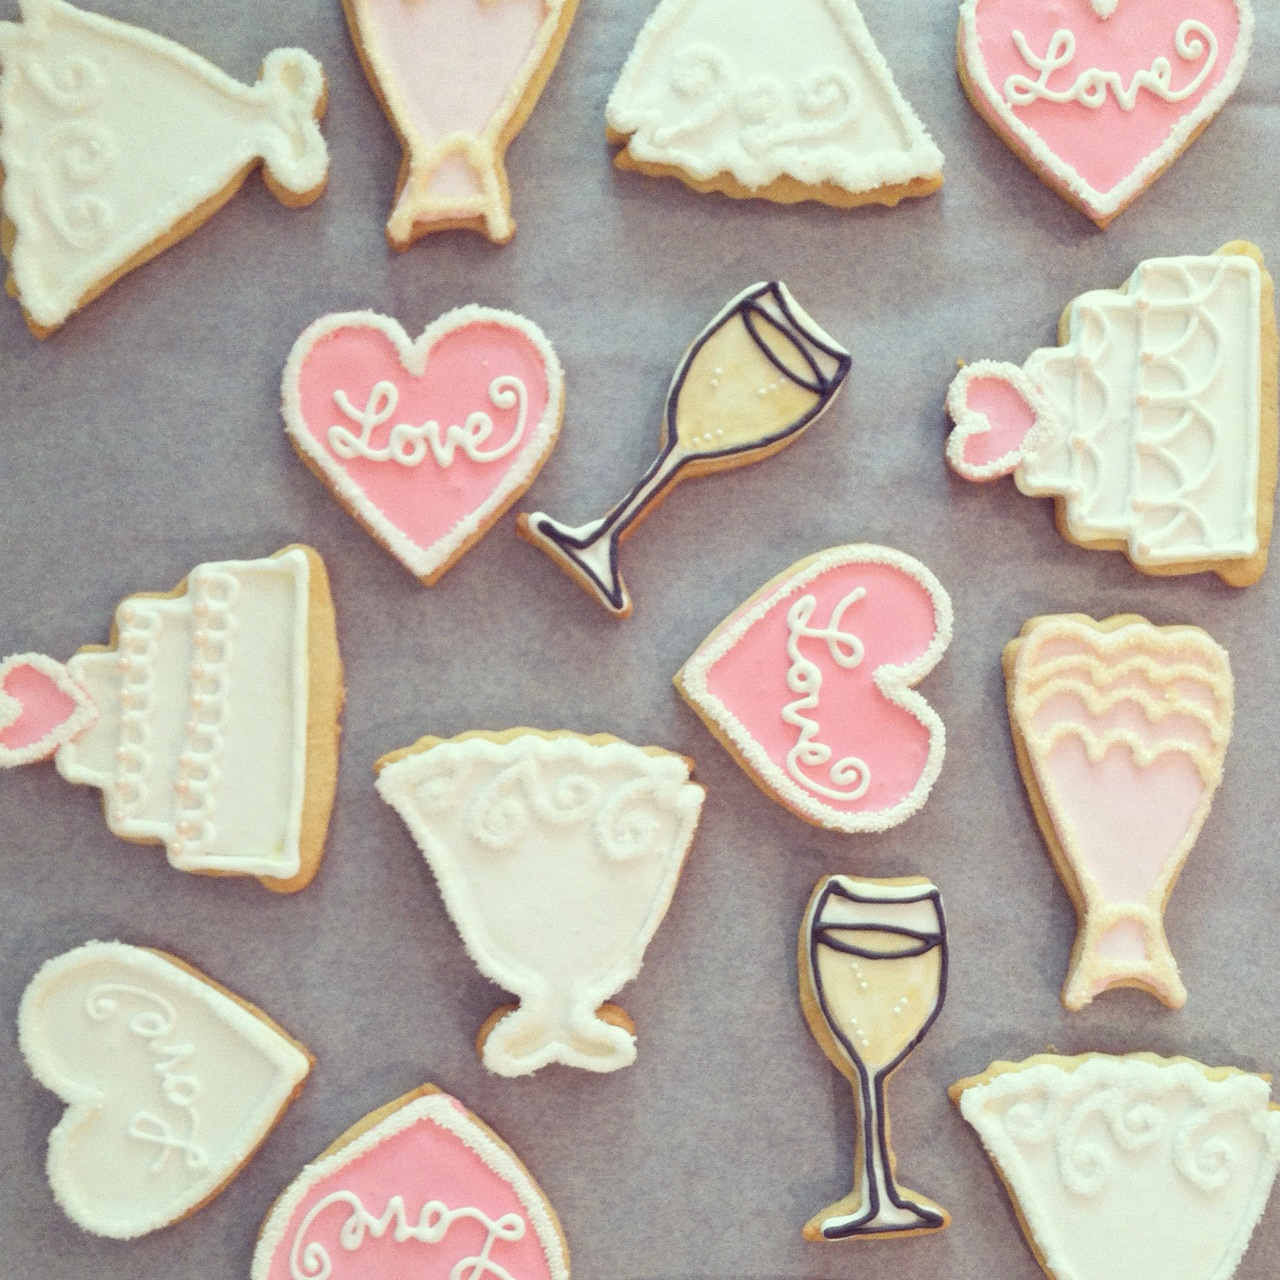 Bridal Shower Sugar Cookies